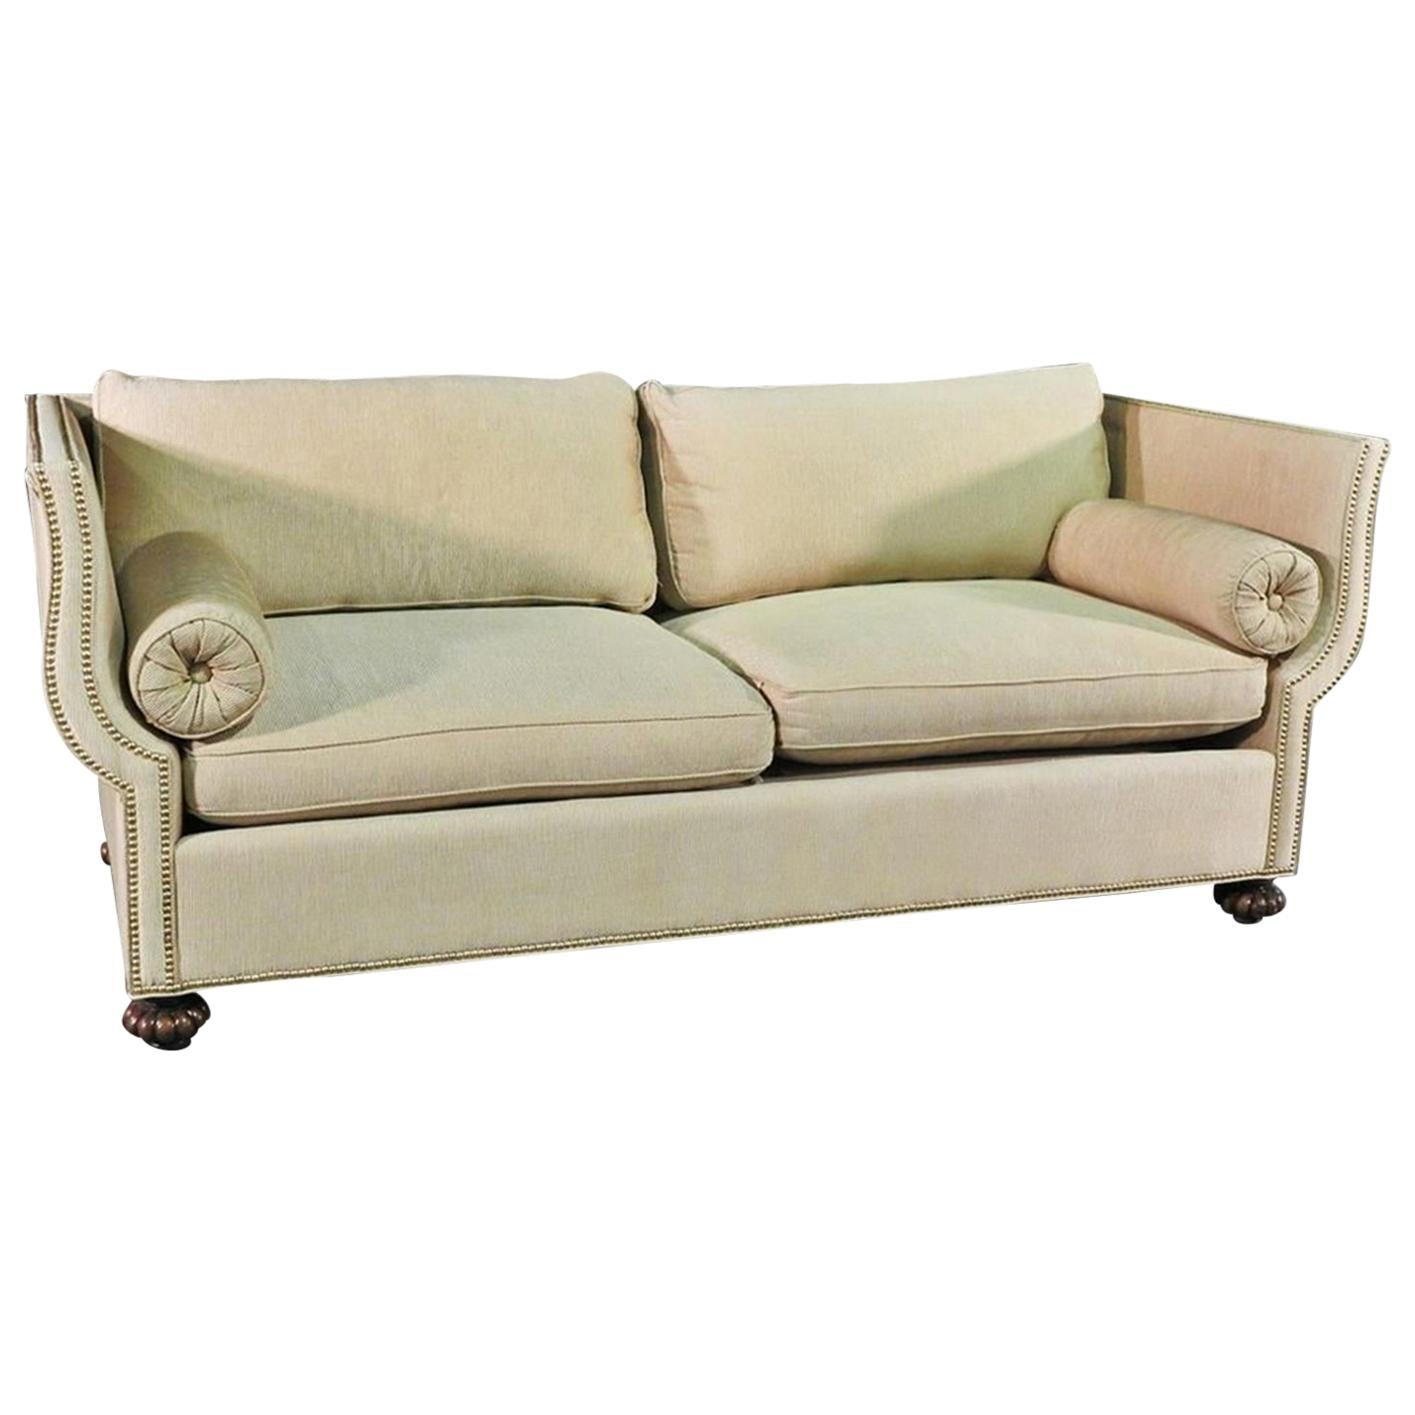 English Knole Style Althorp Living History Sofa Couch Oatmeal Upholstery 1 of 2